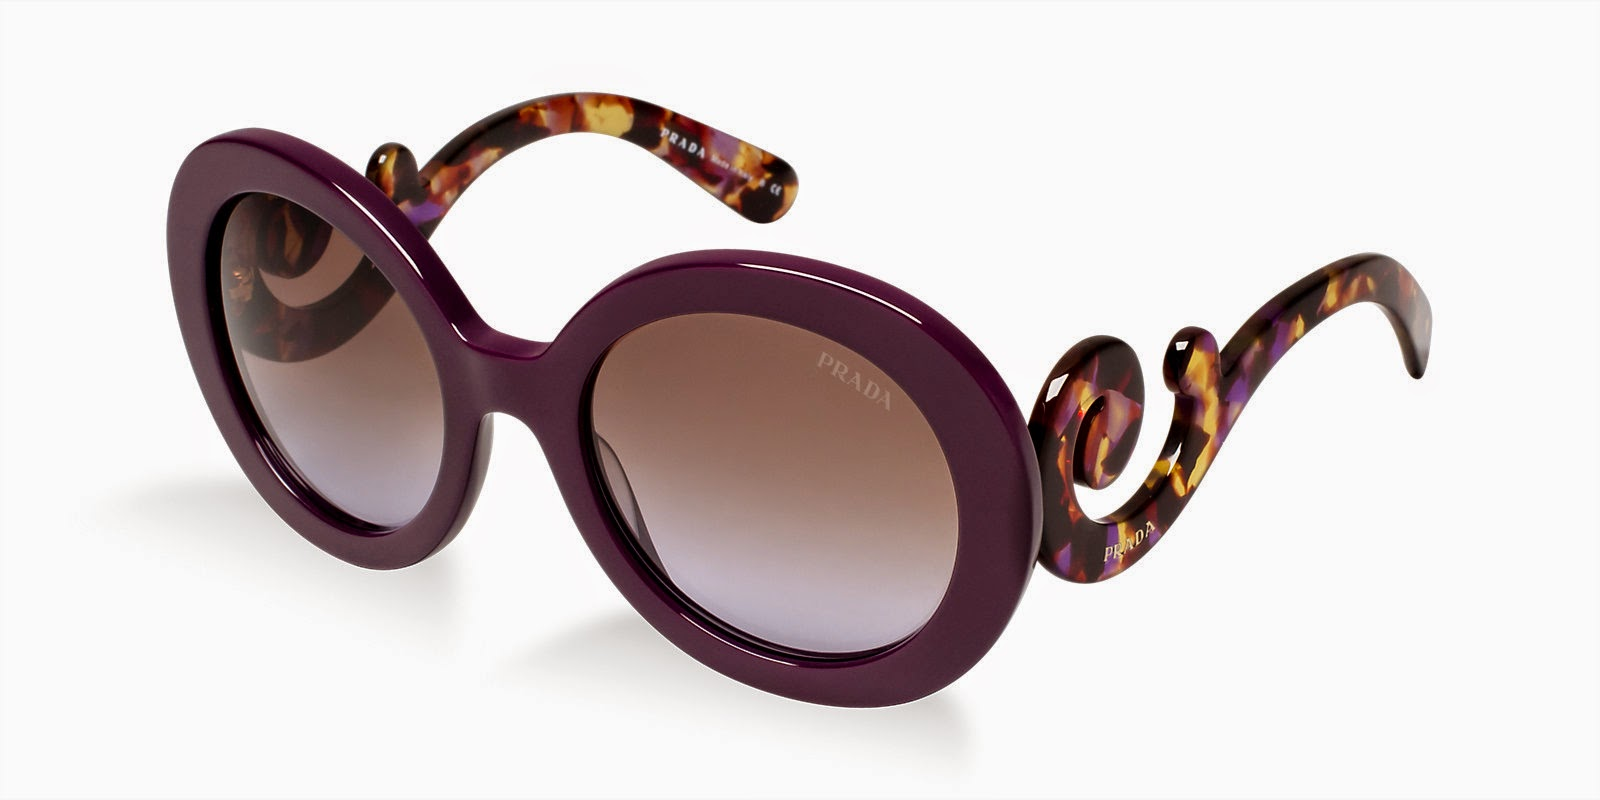 Sunglasses, sunnies, fashion, style, trend, summer, Melanie.Ps, The Purple Scarf, Toronto, Ontario, Canada, Love, Prada, The Sunglass Hut